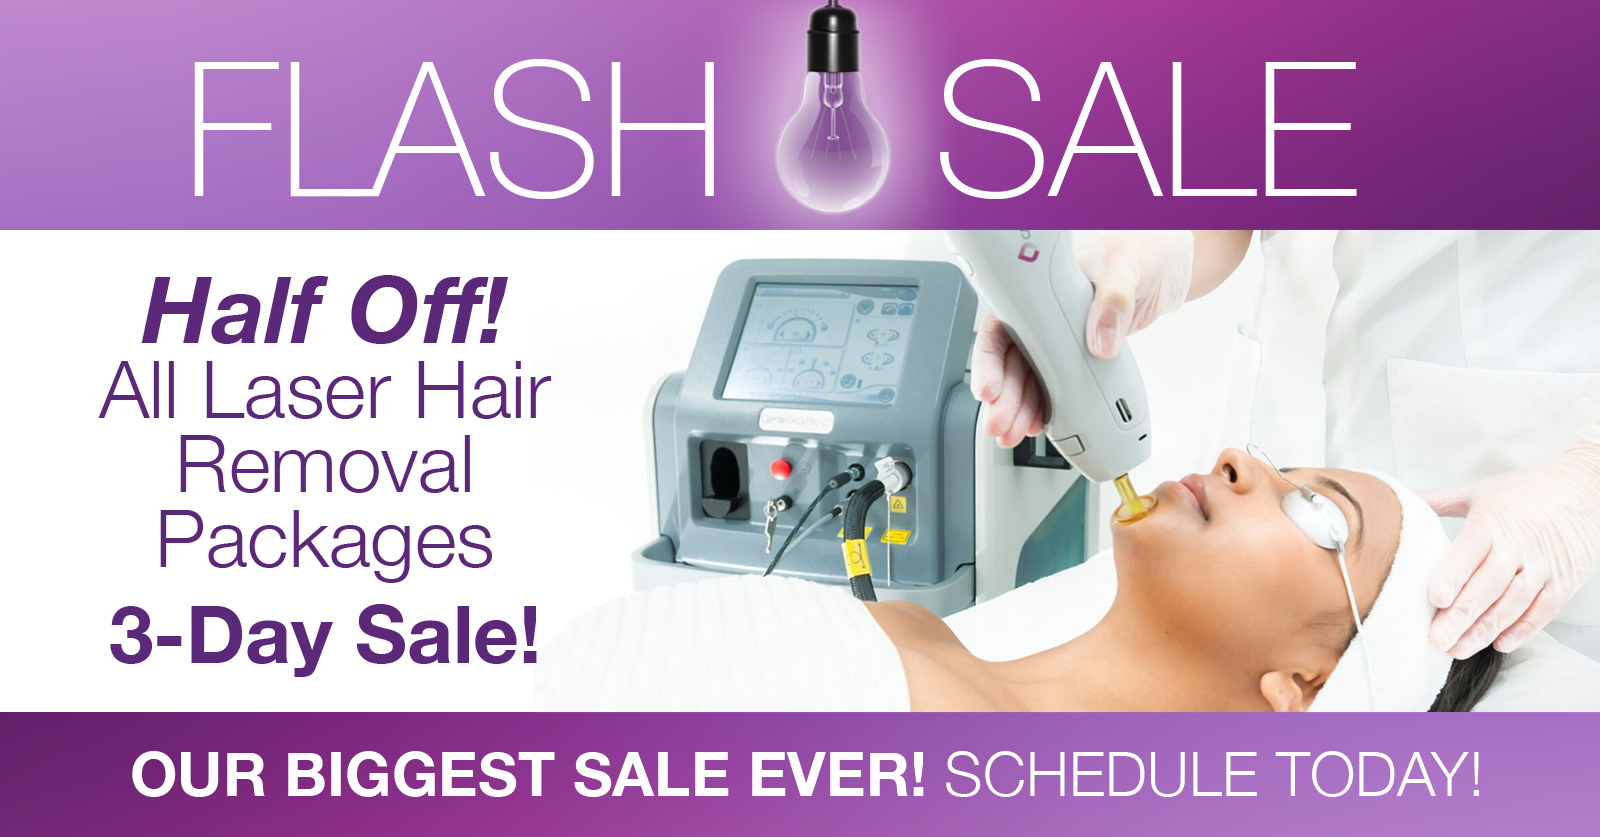 AD: Three-day sale! Get half price laser hair removal at